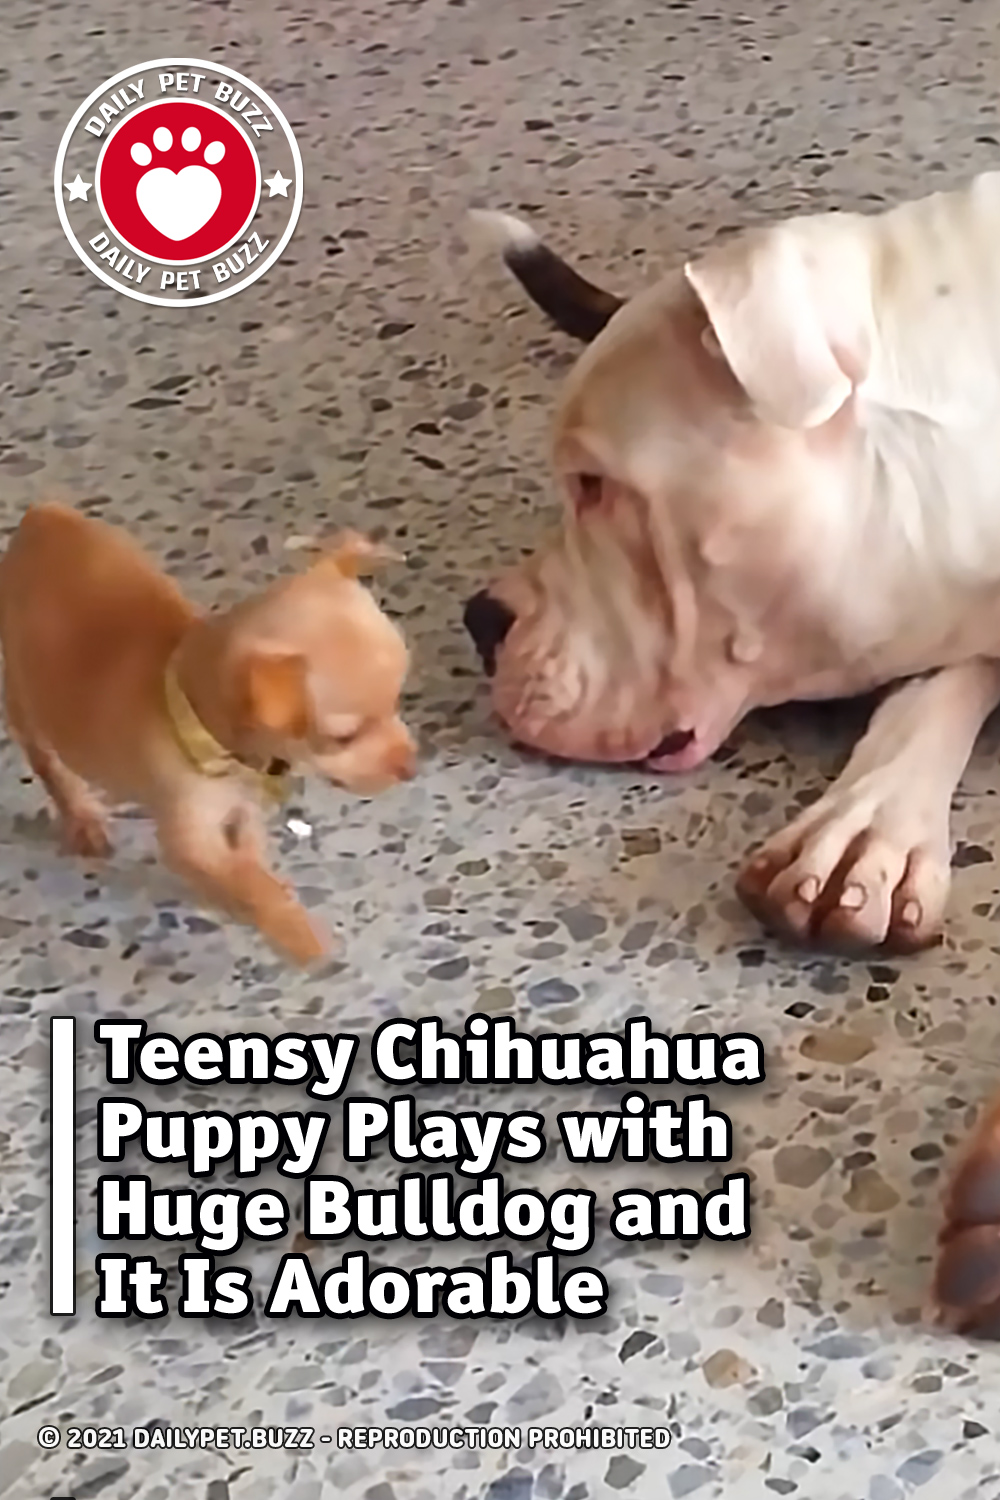 Teensy Chihuahua Puppy Plays with Huge Bulldog and It Is Adorable